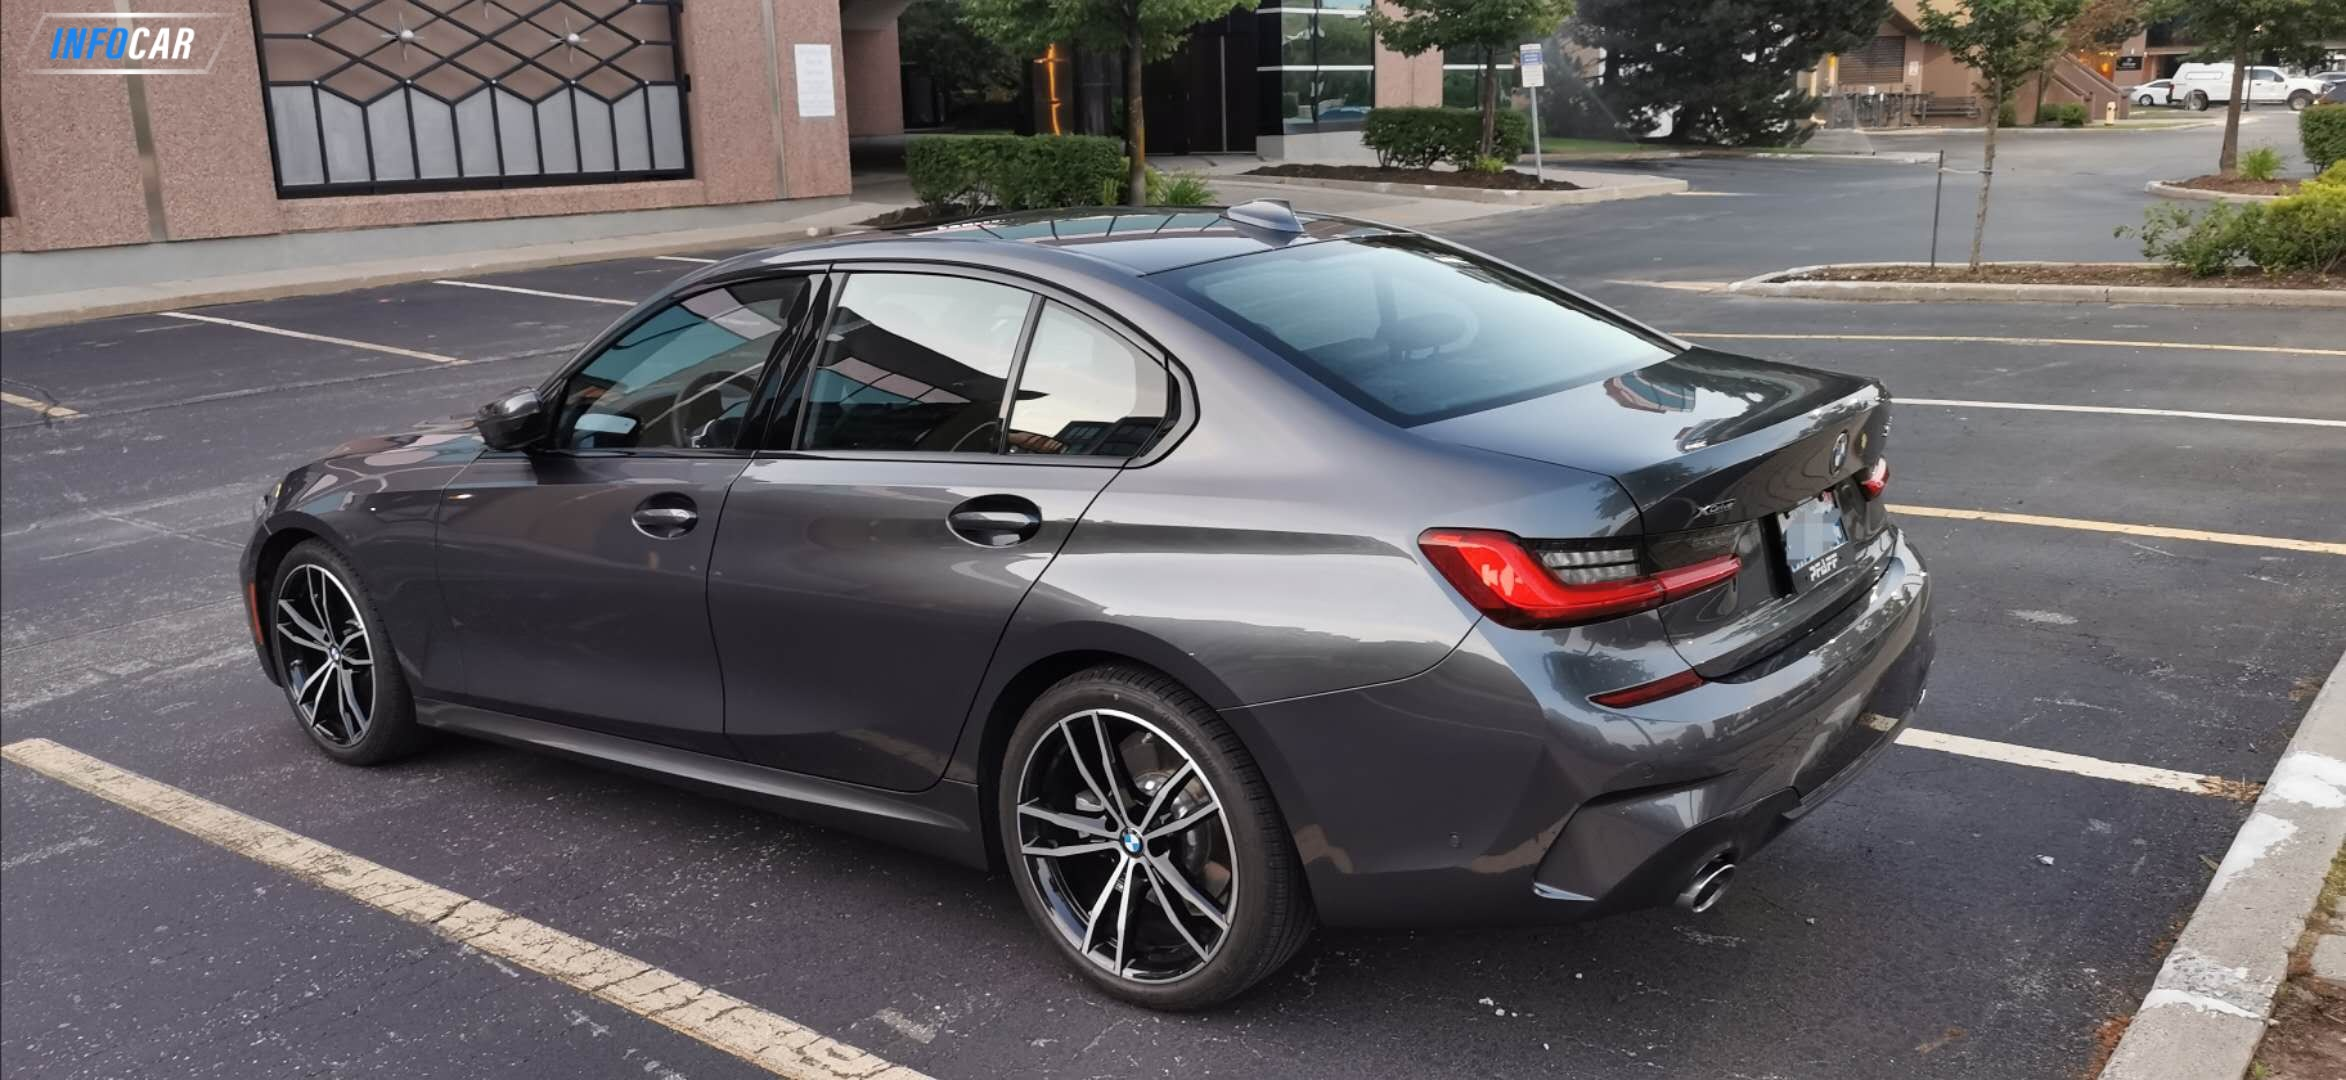 2019 BMW 3-Series 330 - INFOCAR - Toronto's Most Comprehensive New and Used Auto Trading Platform